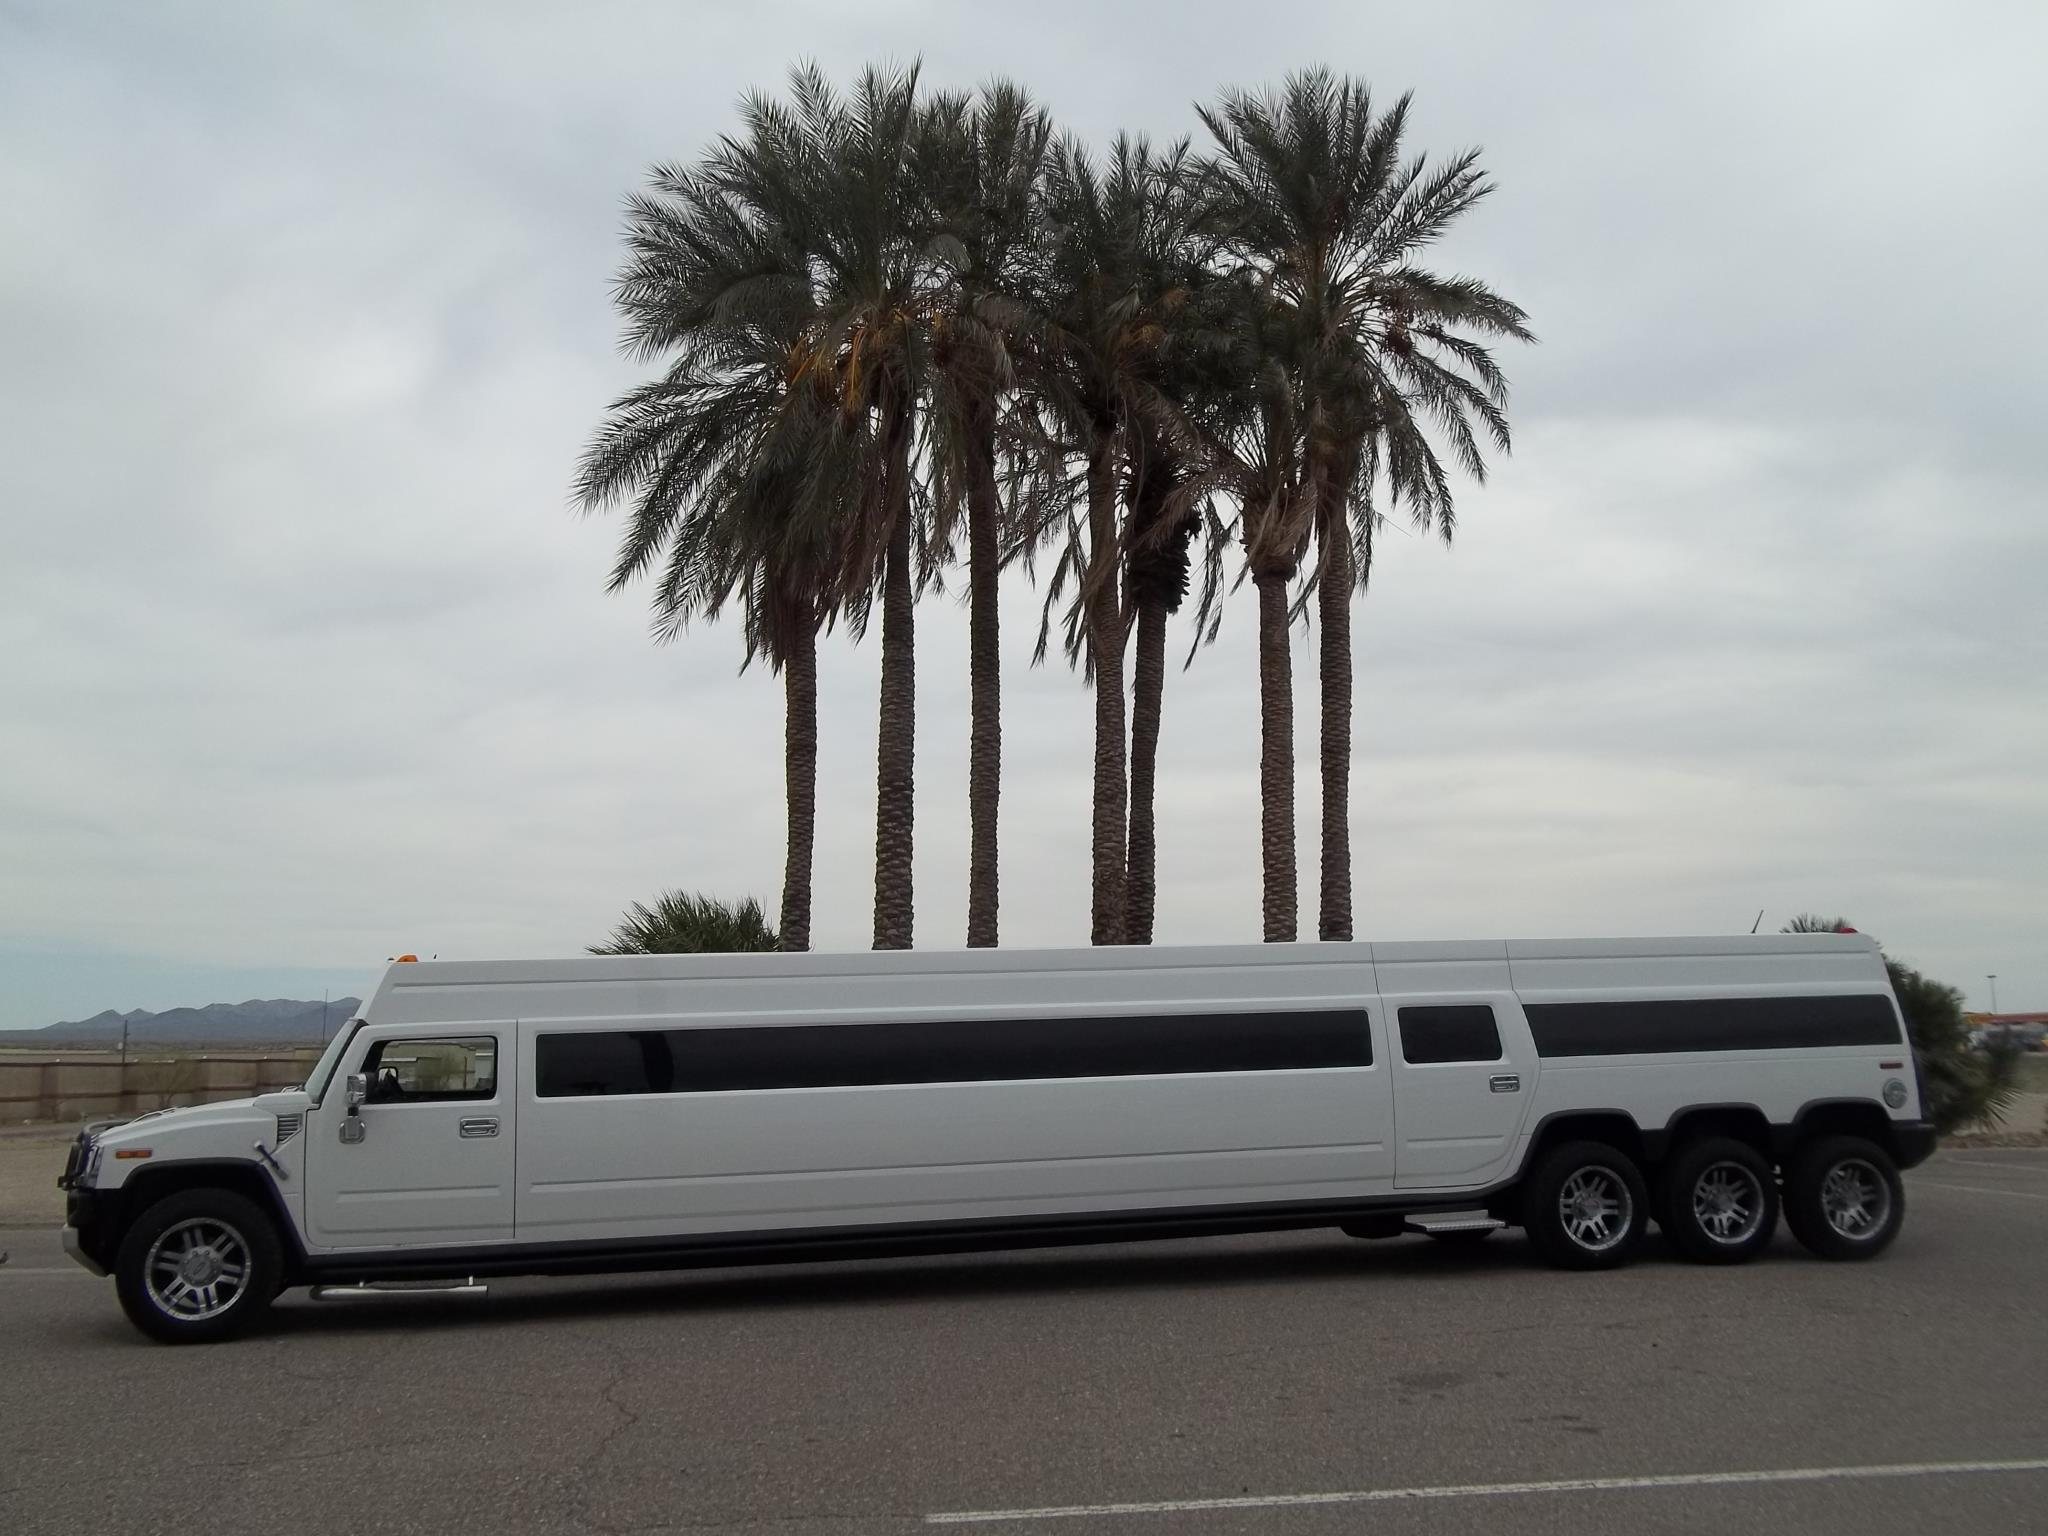 A Stars Limo   Hummer Rides in Palos Heights   Hummer Rides Palos Heights 2.jpg